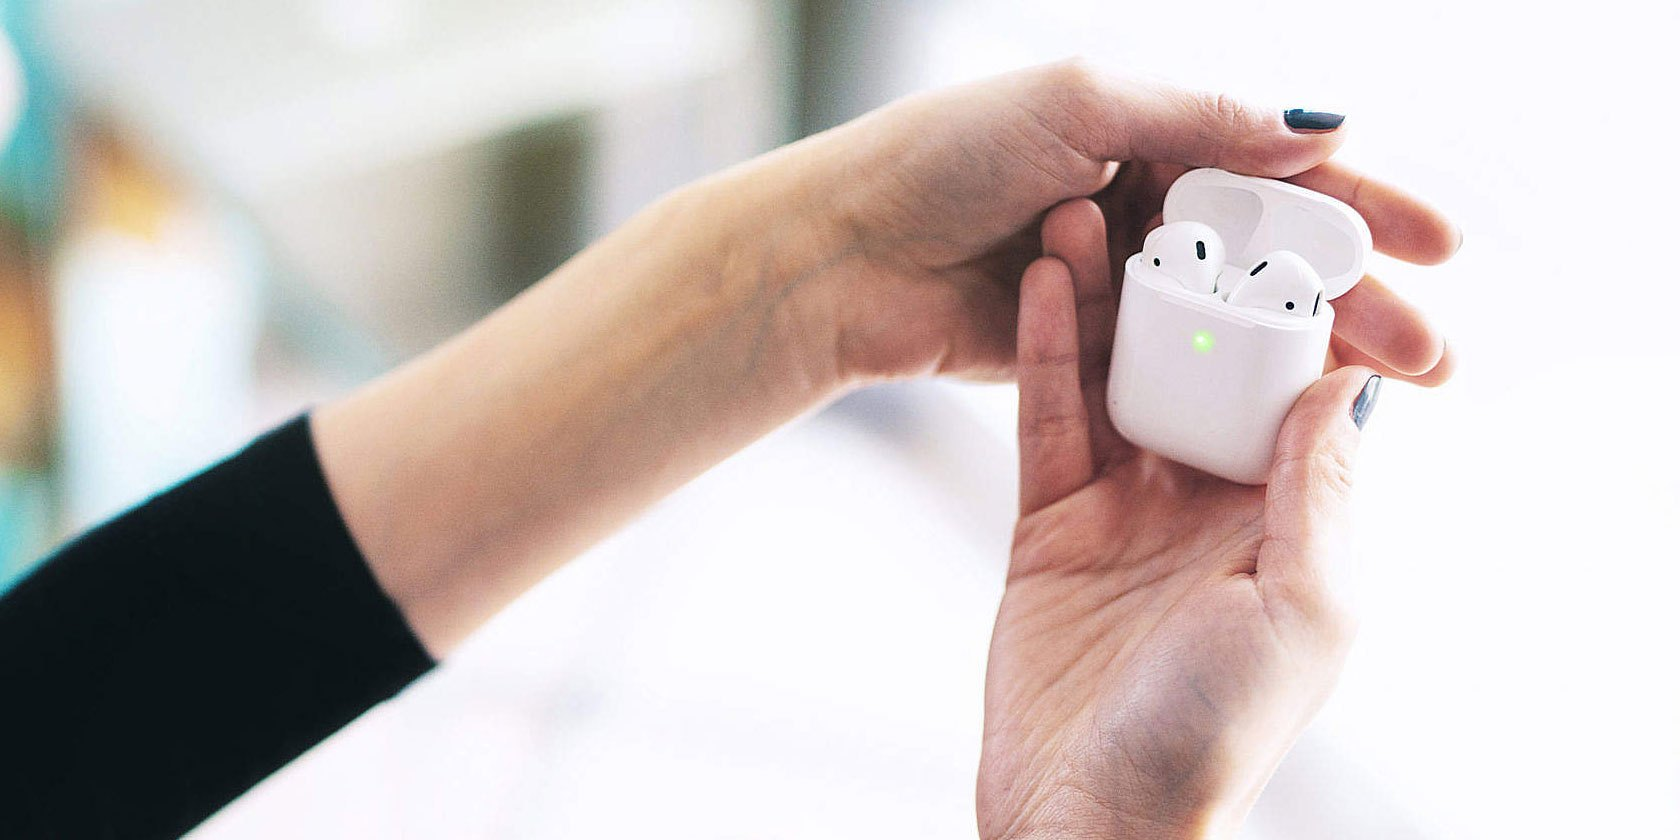 Get Apple AirPods for Cheap With 4 Deal Websites